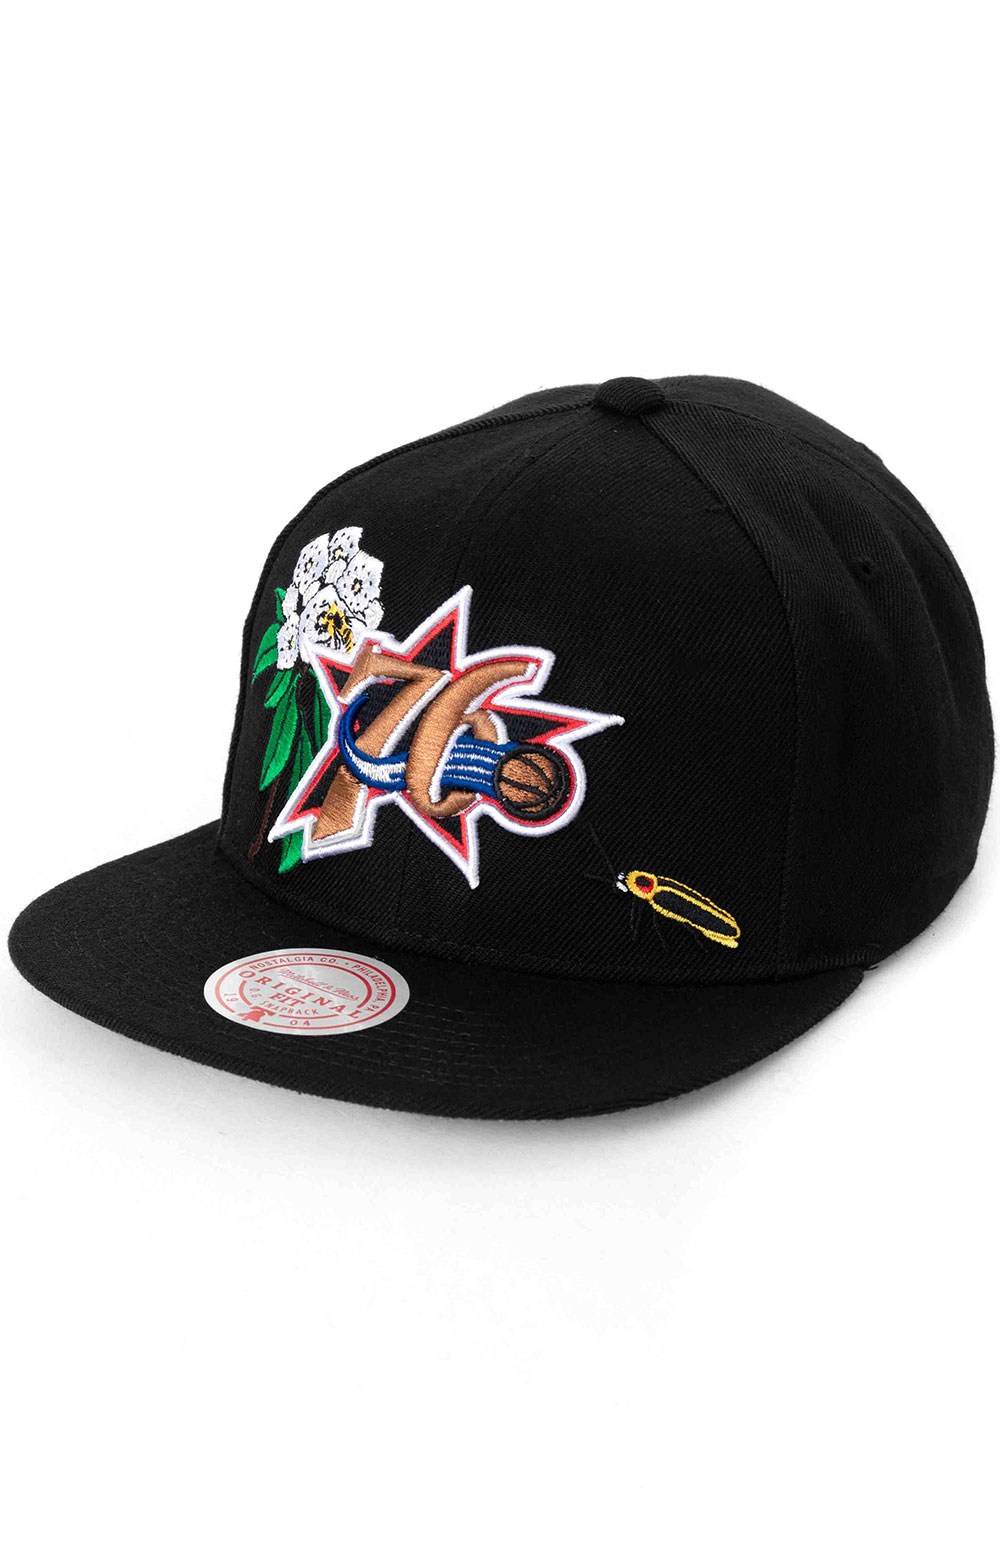 State Flower Snap-Back Hat - 76ers